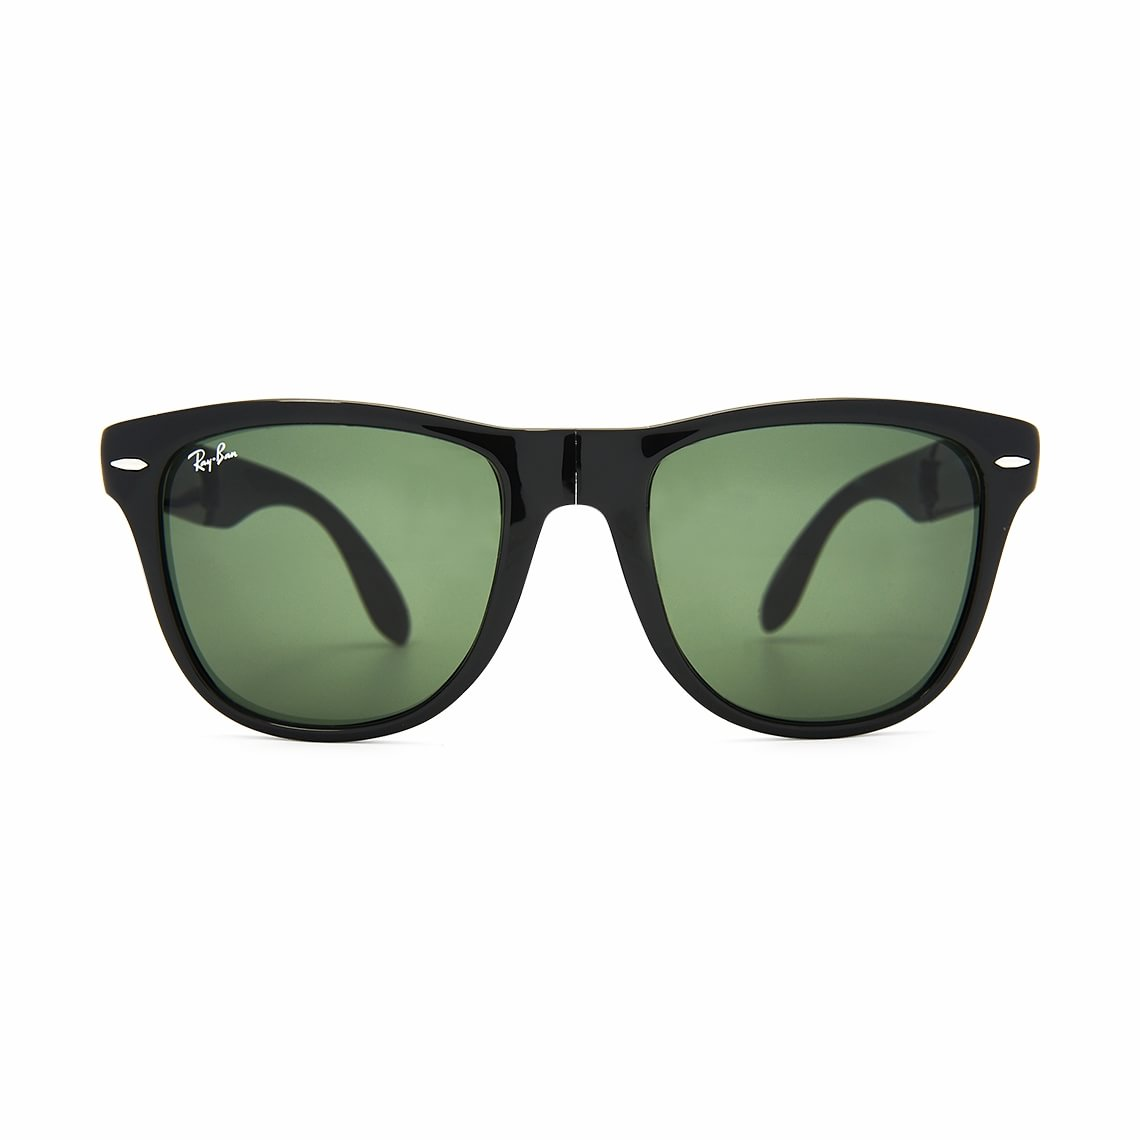 Ray-Ban Wayfarer folding RB4105 601 54